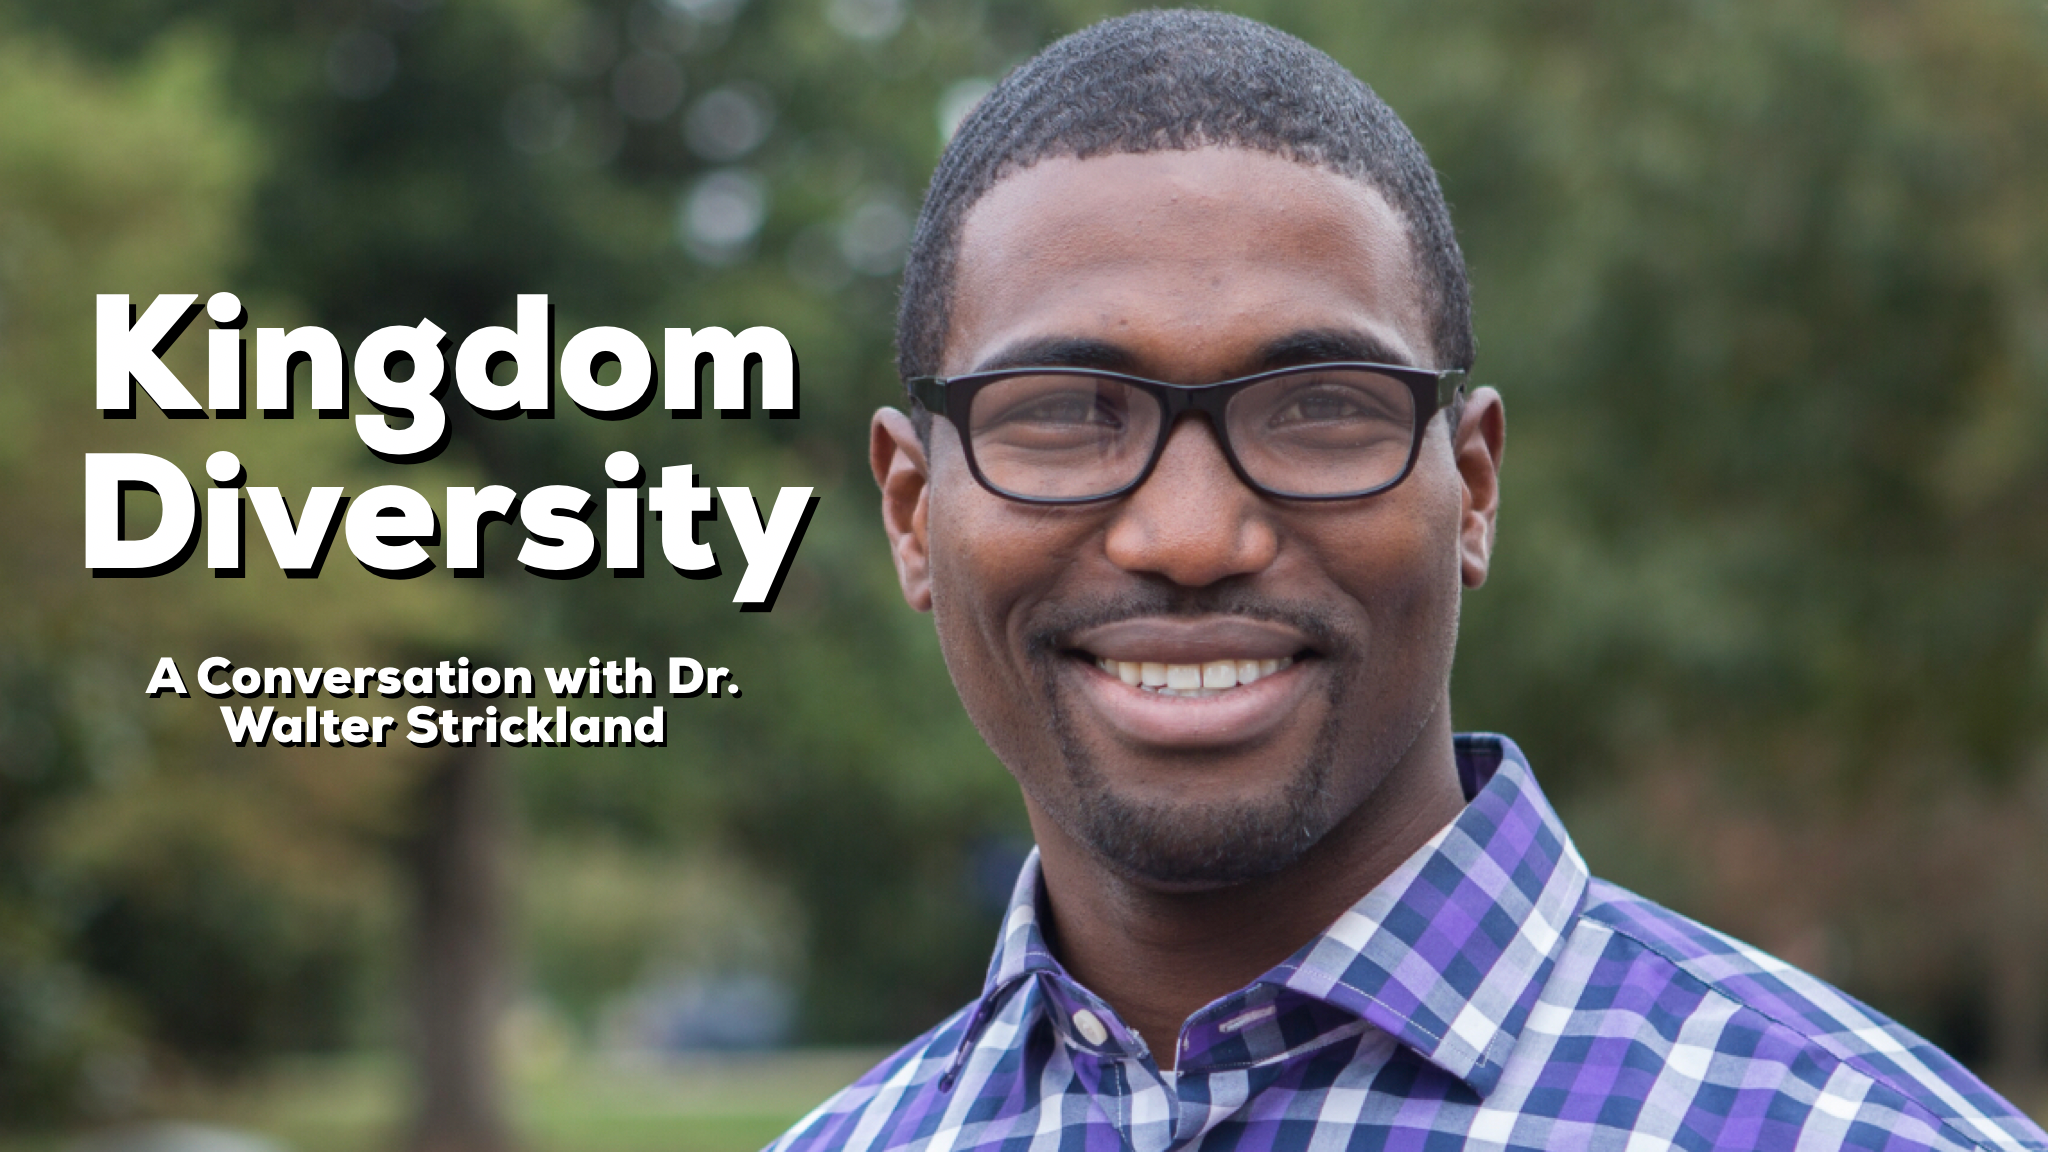 Jesse interviews Dr. Walter Strickland, PhD, Vice President for Kingdom Diversity at Southeastern Baptist Theological Seminary.